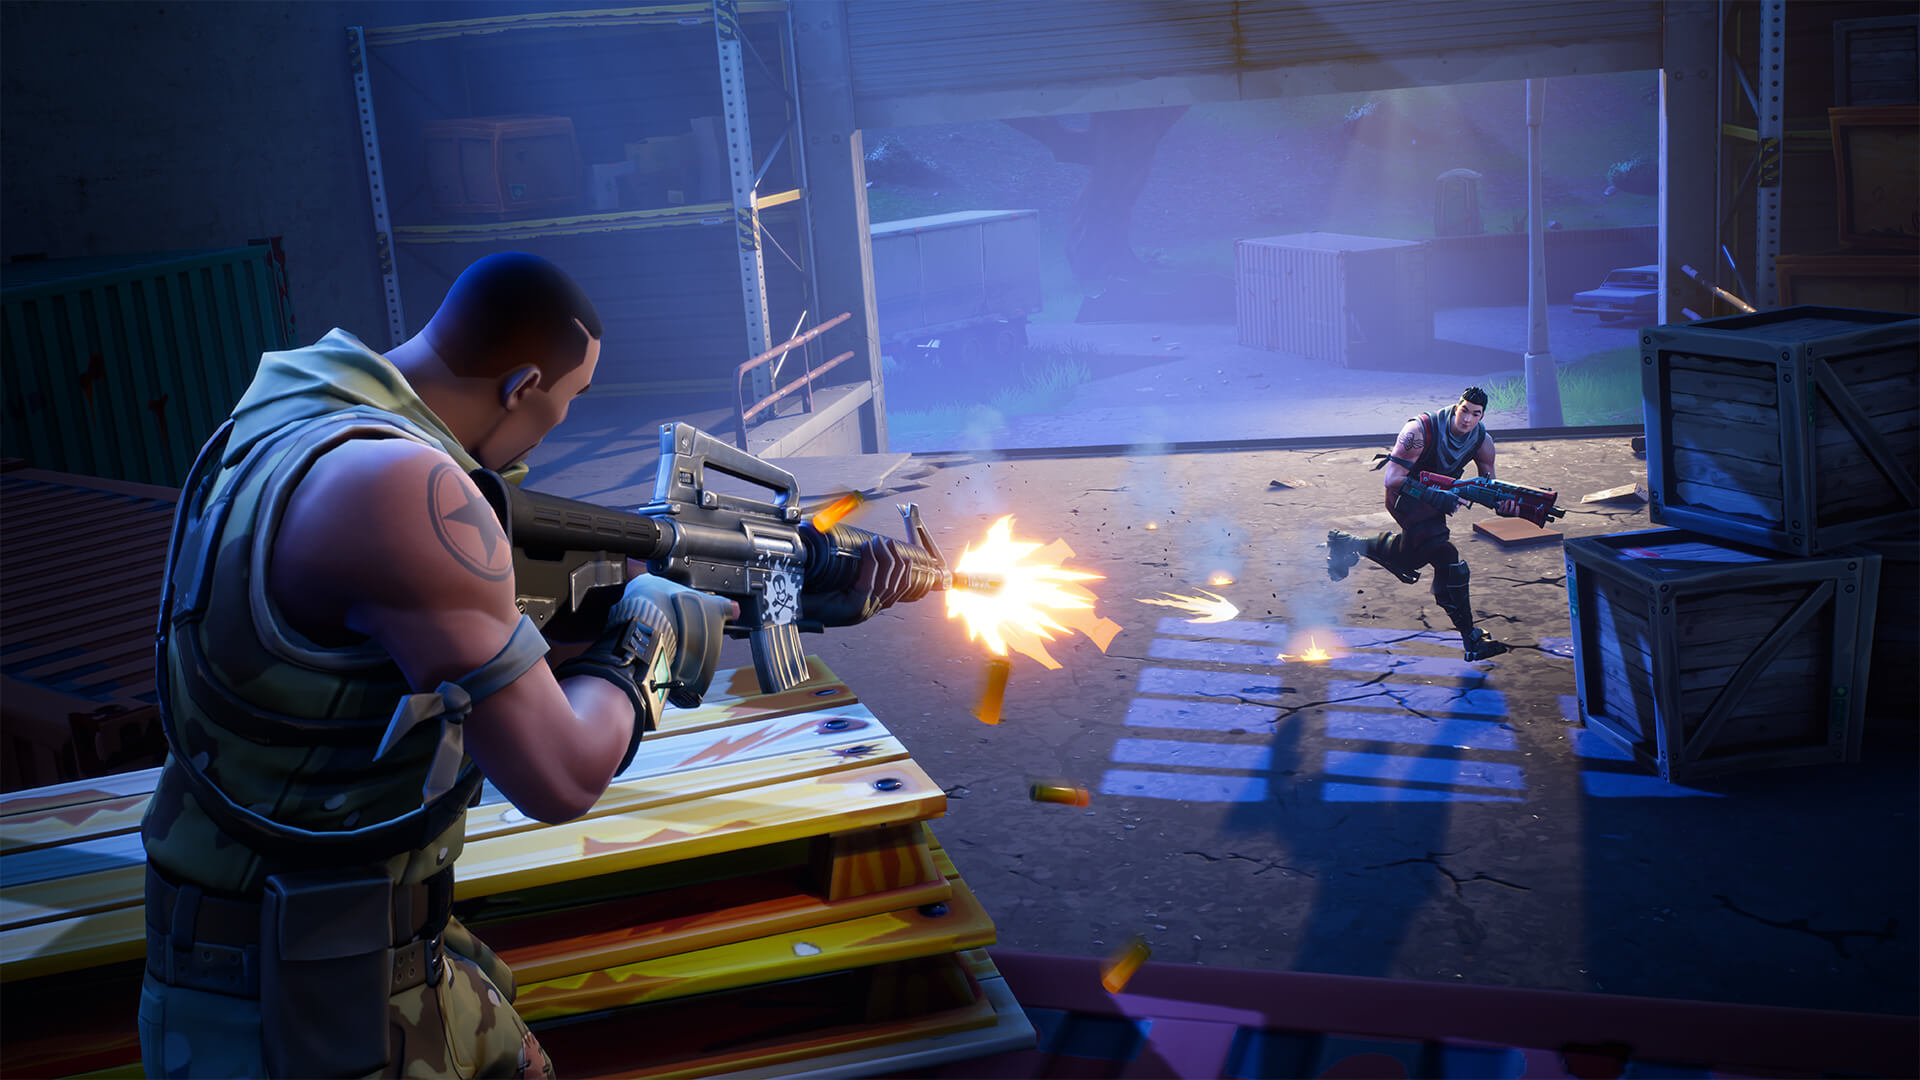 Fortnite Season 4 announced, possible superhero theme inbound